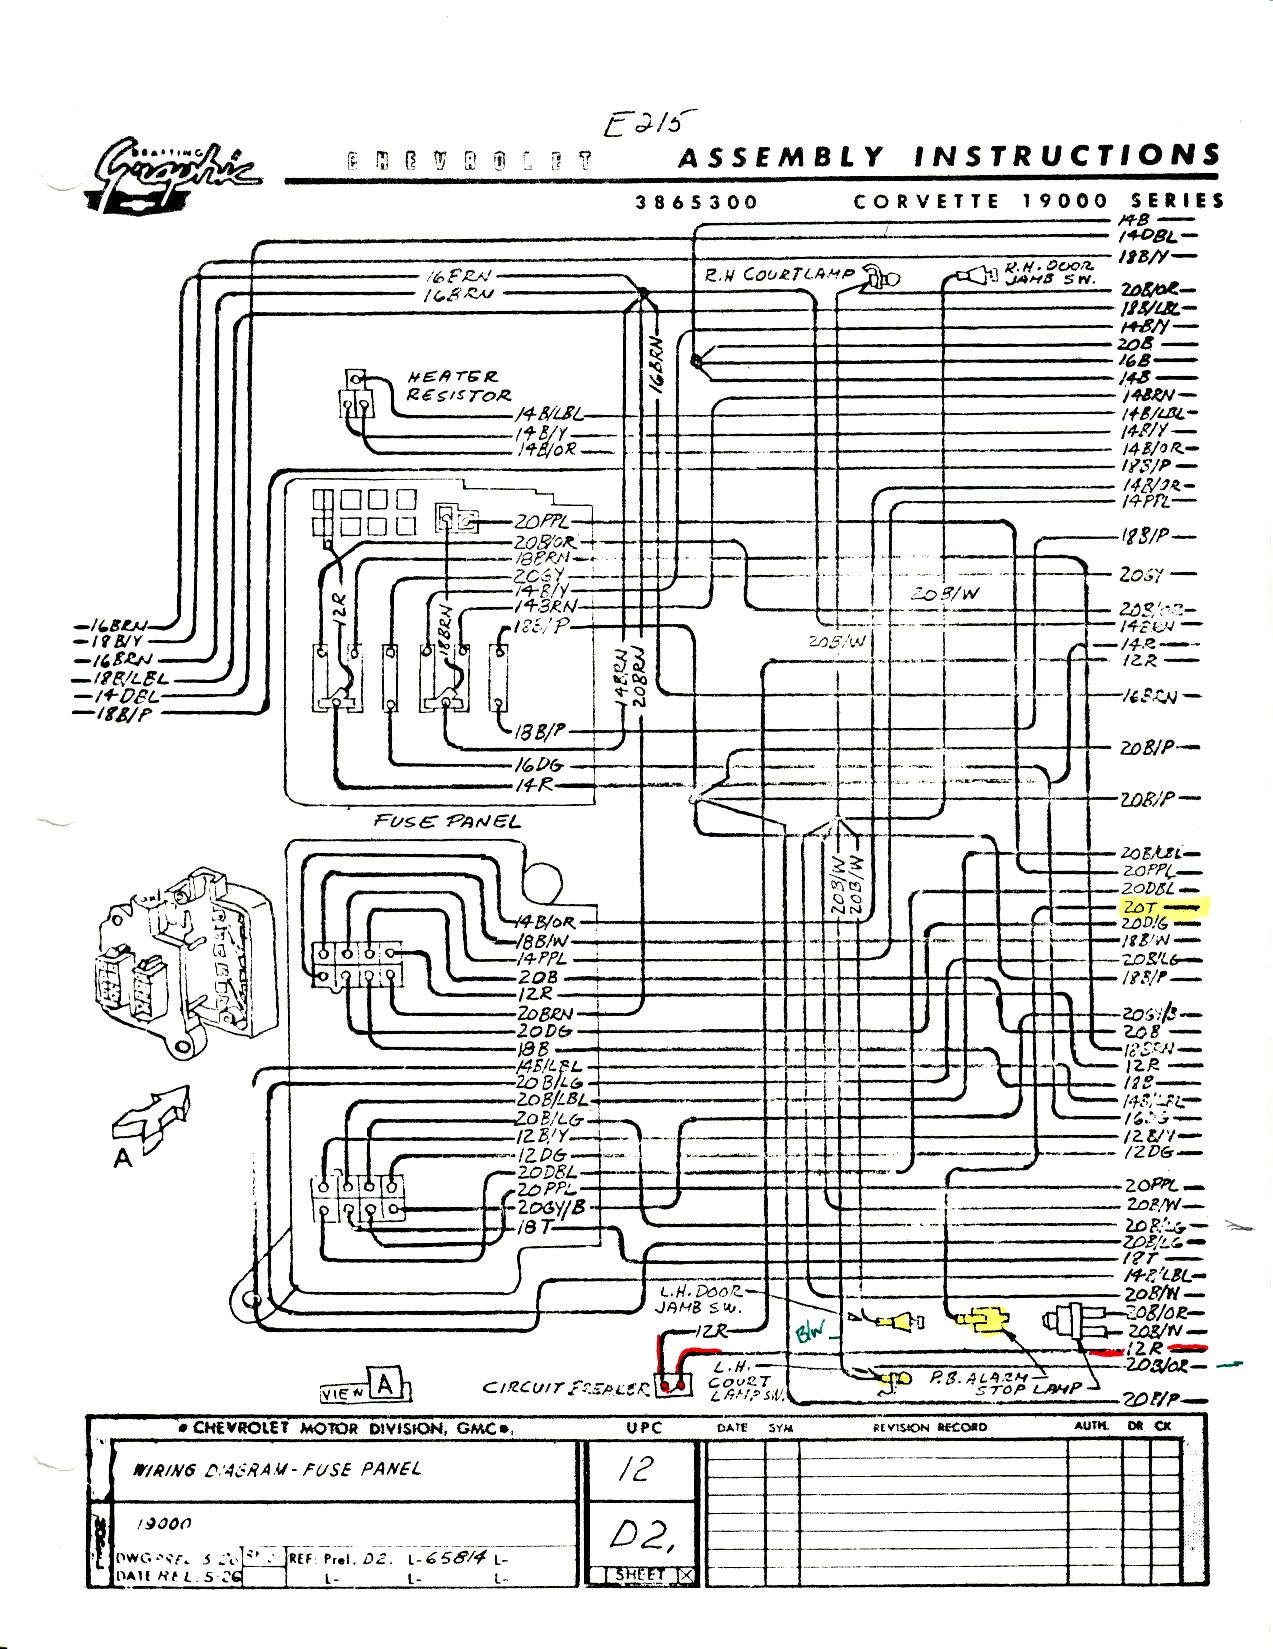 small resolution of 2000 c5 corvette engine diagram index listing of wiring diagrams c5 corvette abs diagram c5 corvette wiring diagrams